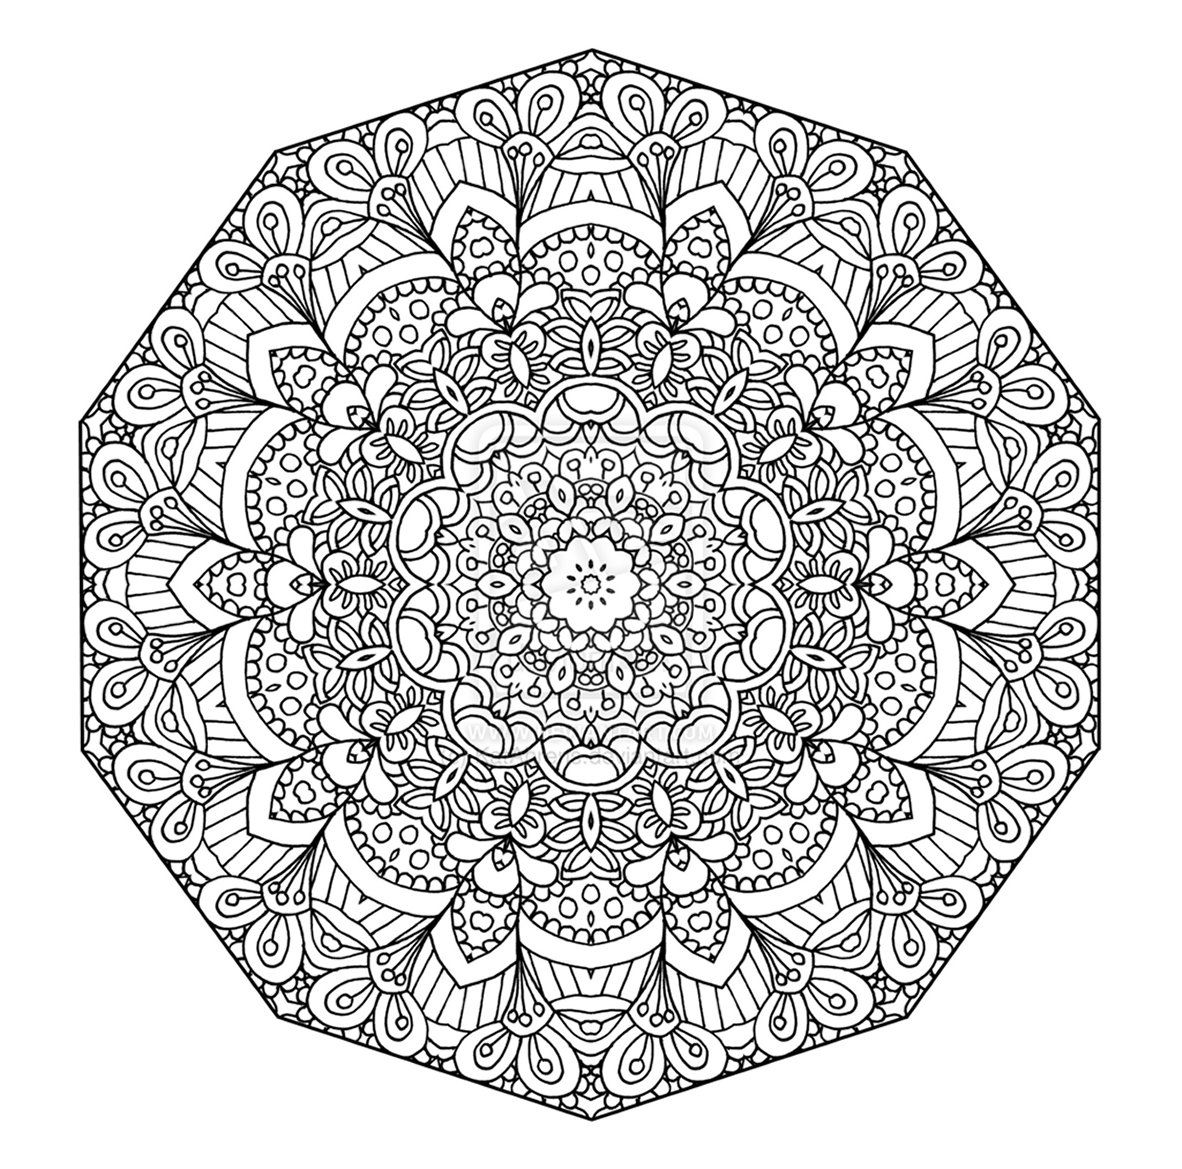 Detailed Coloring Pages for Teenagers | Detailed Abstract Coloring ...